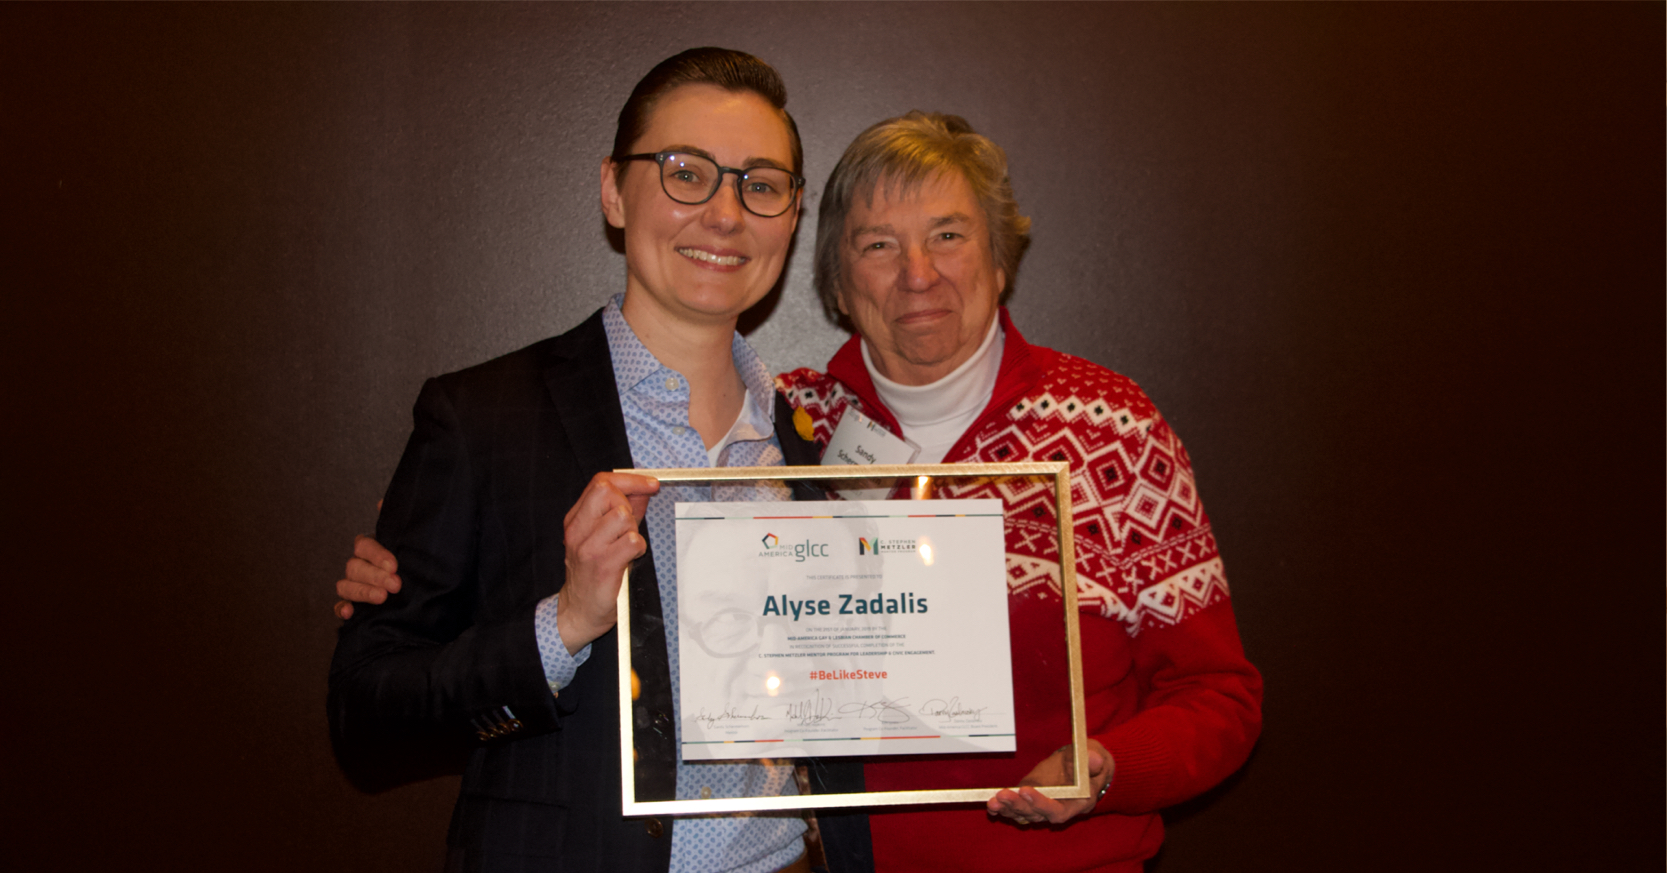 mid_america_lgbt_chamber-feature_image-metzler_mentor_program-6